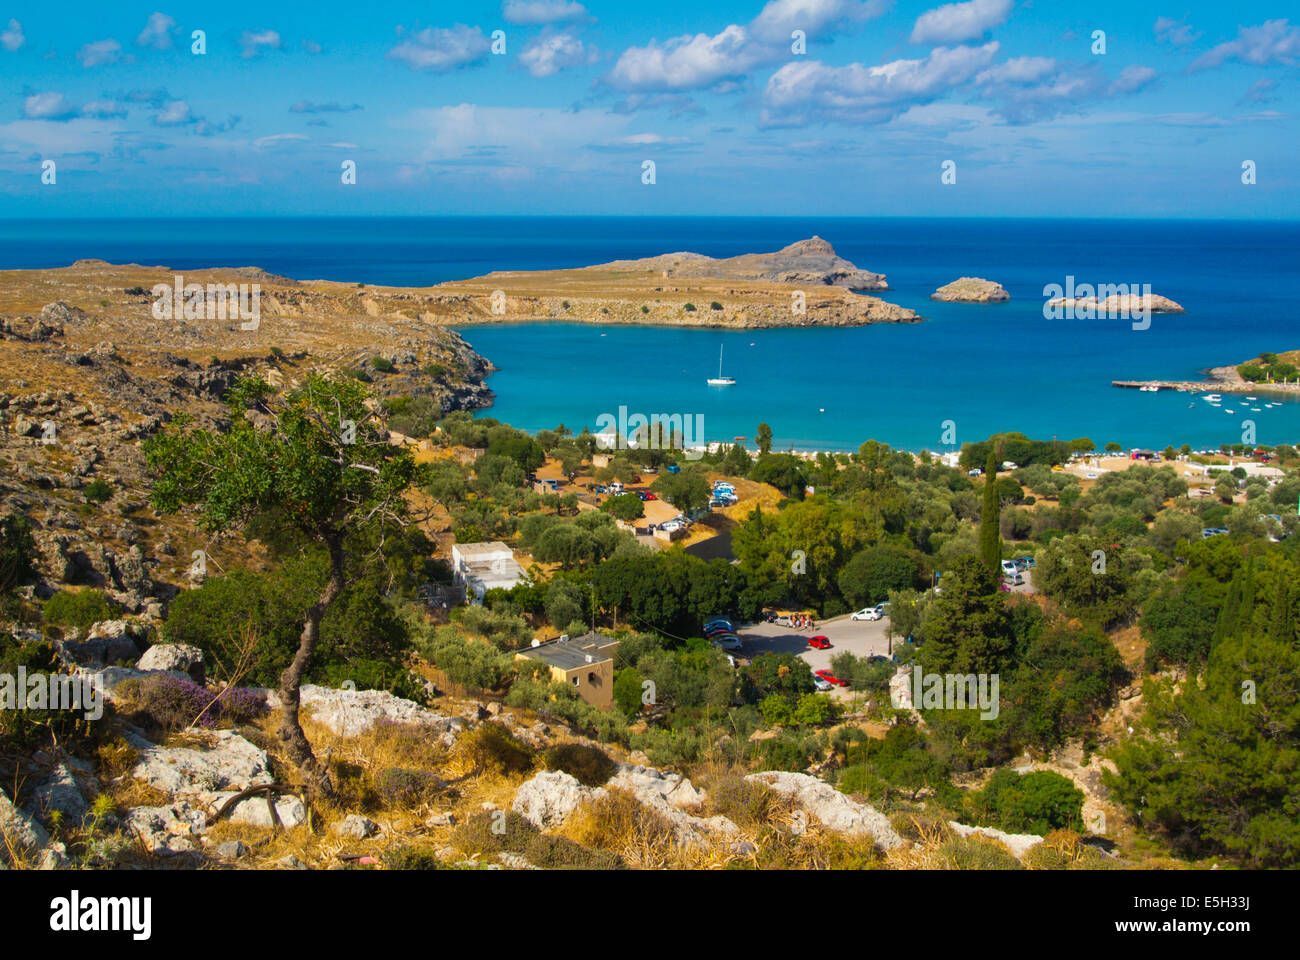 The bay around Lindos town, Rhodes island, Dodecanese islands, Greece, Europe - Stock Image